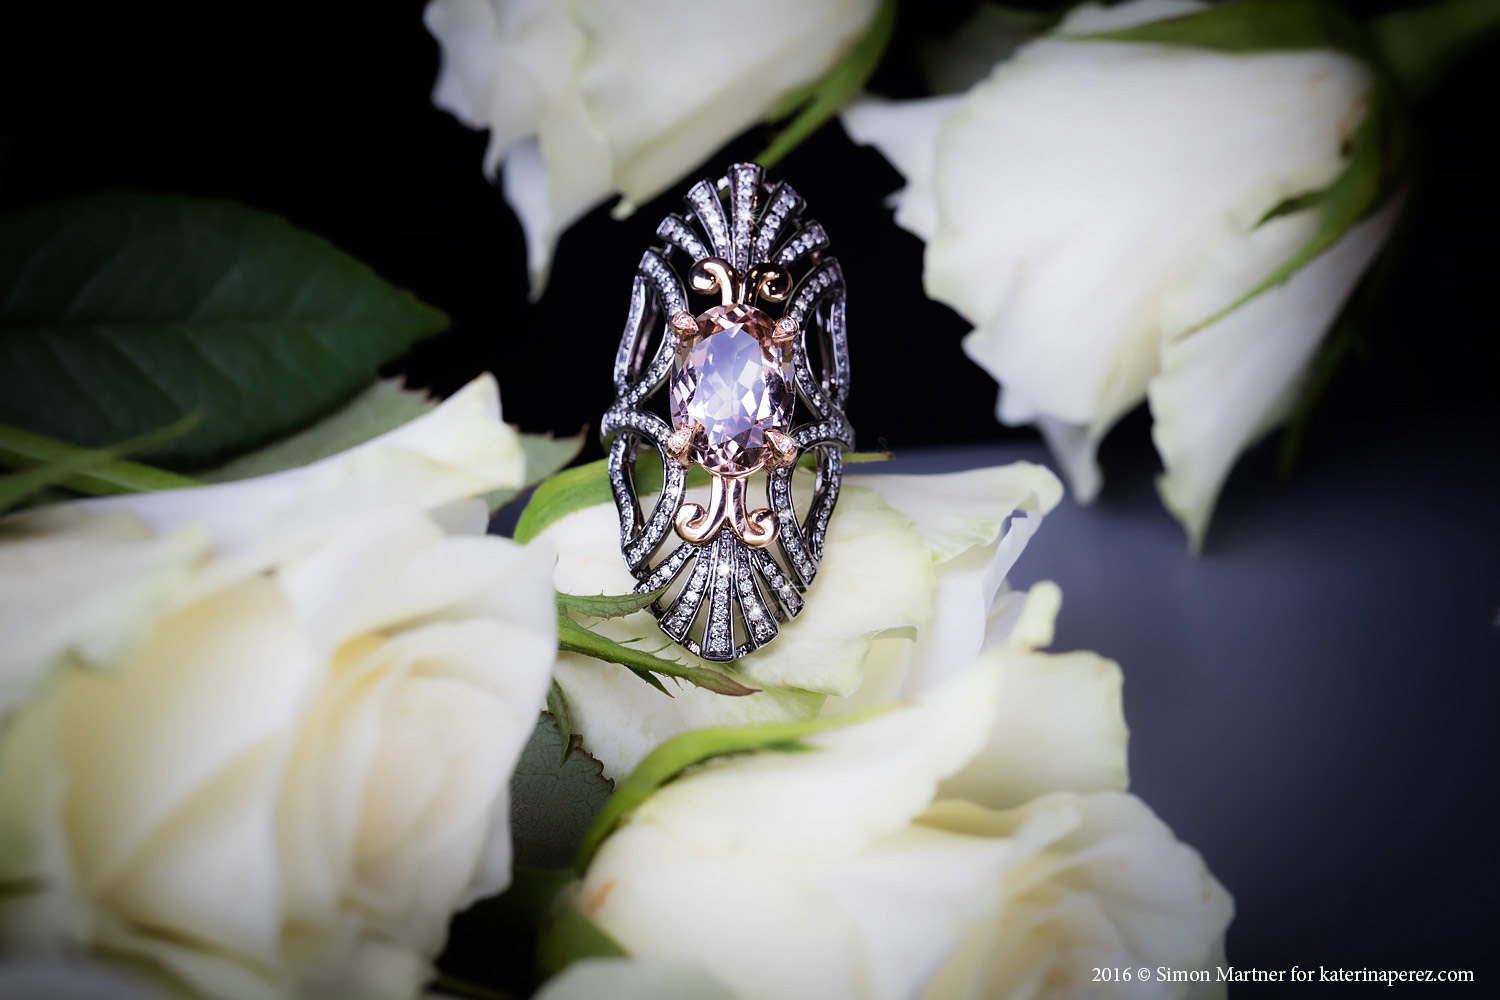 Bochic morganite, diamonds and 18K white gold ring - £6,000